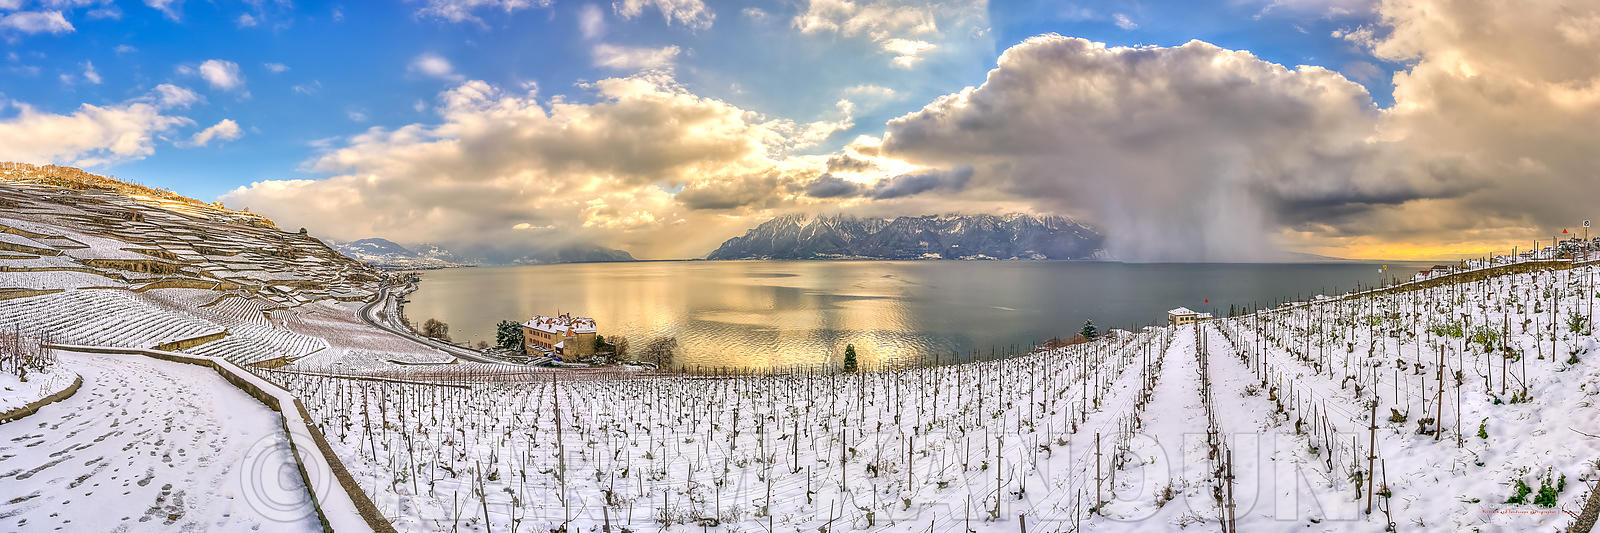 Panorama - Snowy vineyard with a snow storm